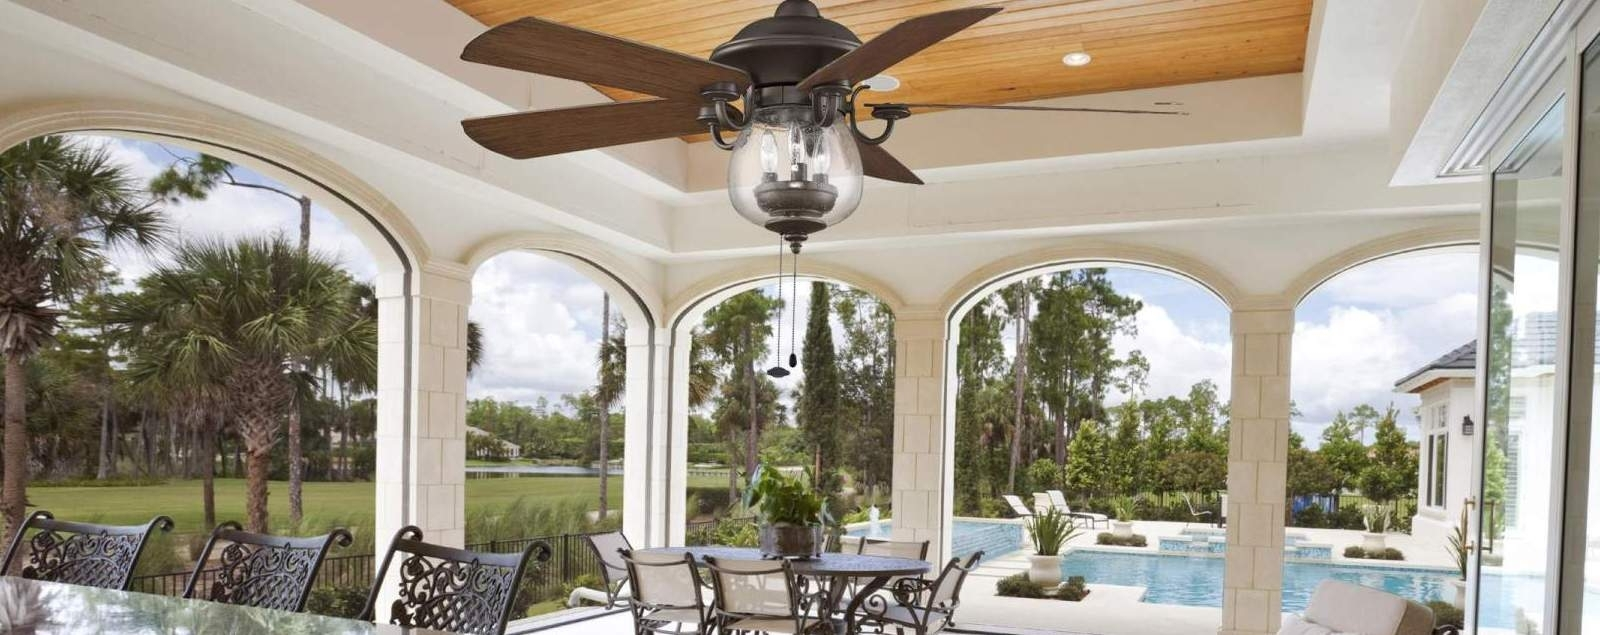 Well Liked Outdoor Ceiling Fans For Wet Areas With Outdoor Ceiling Fans – Shop Wet, Dry, And Damp Rated Outdoor Fans (View 3 of 20)